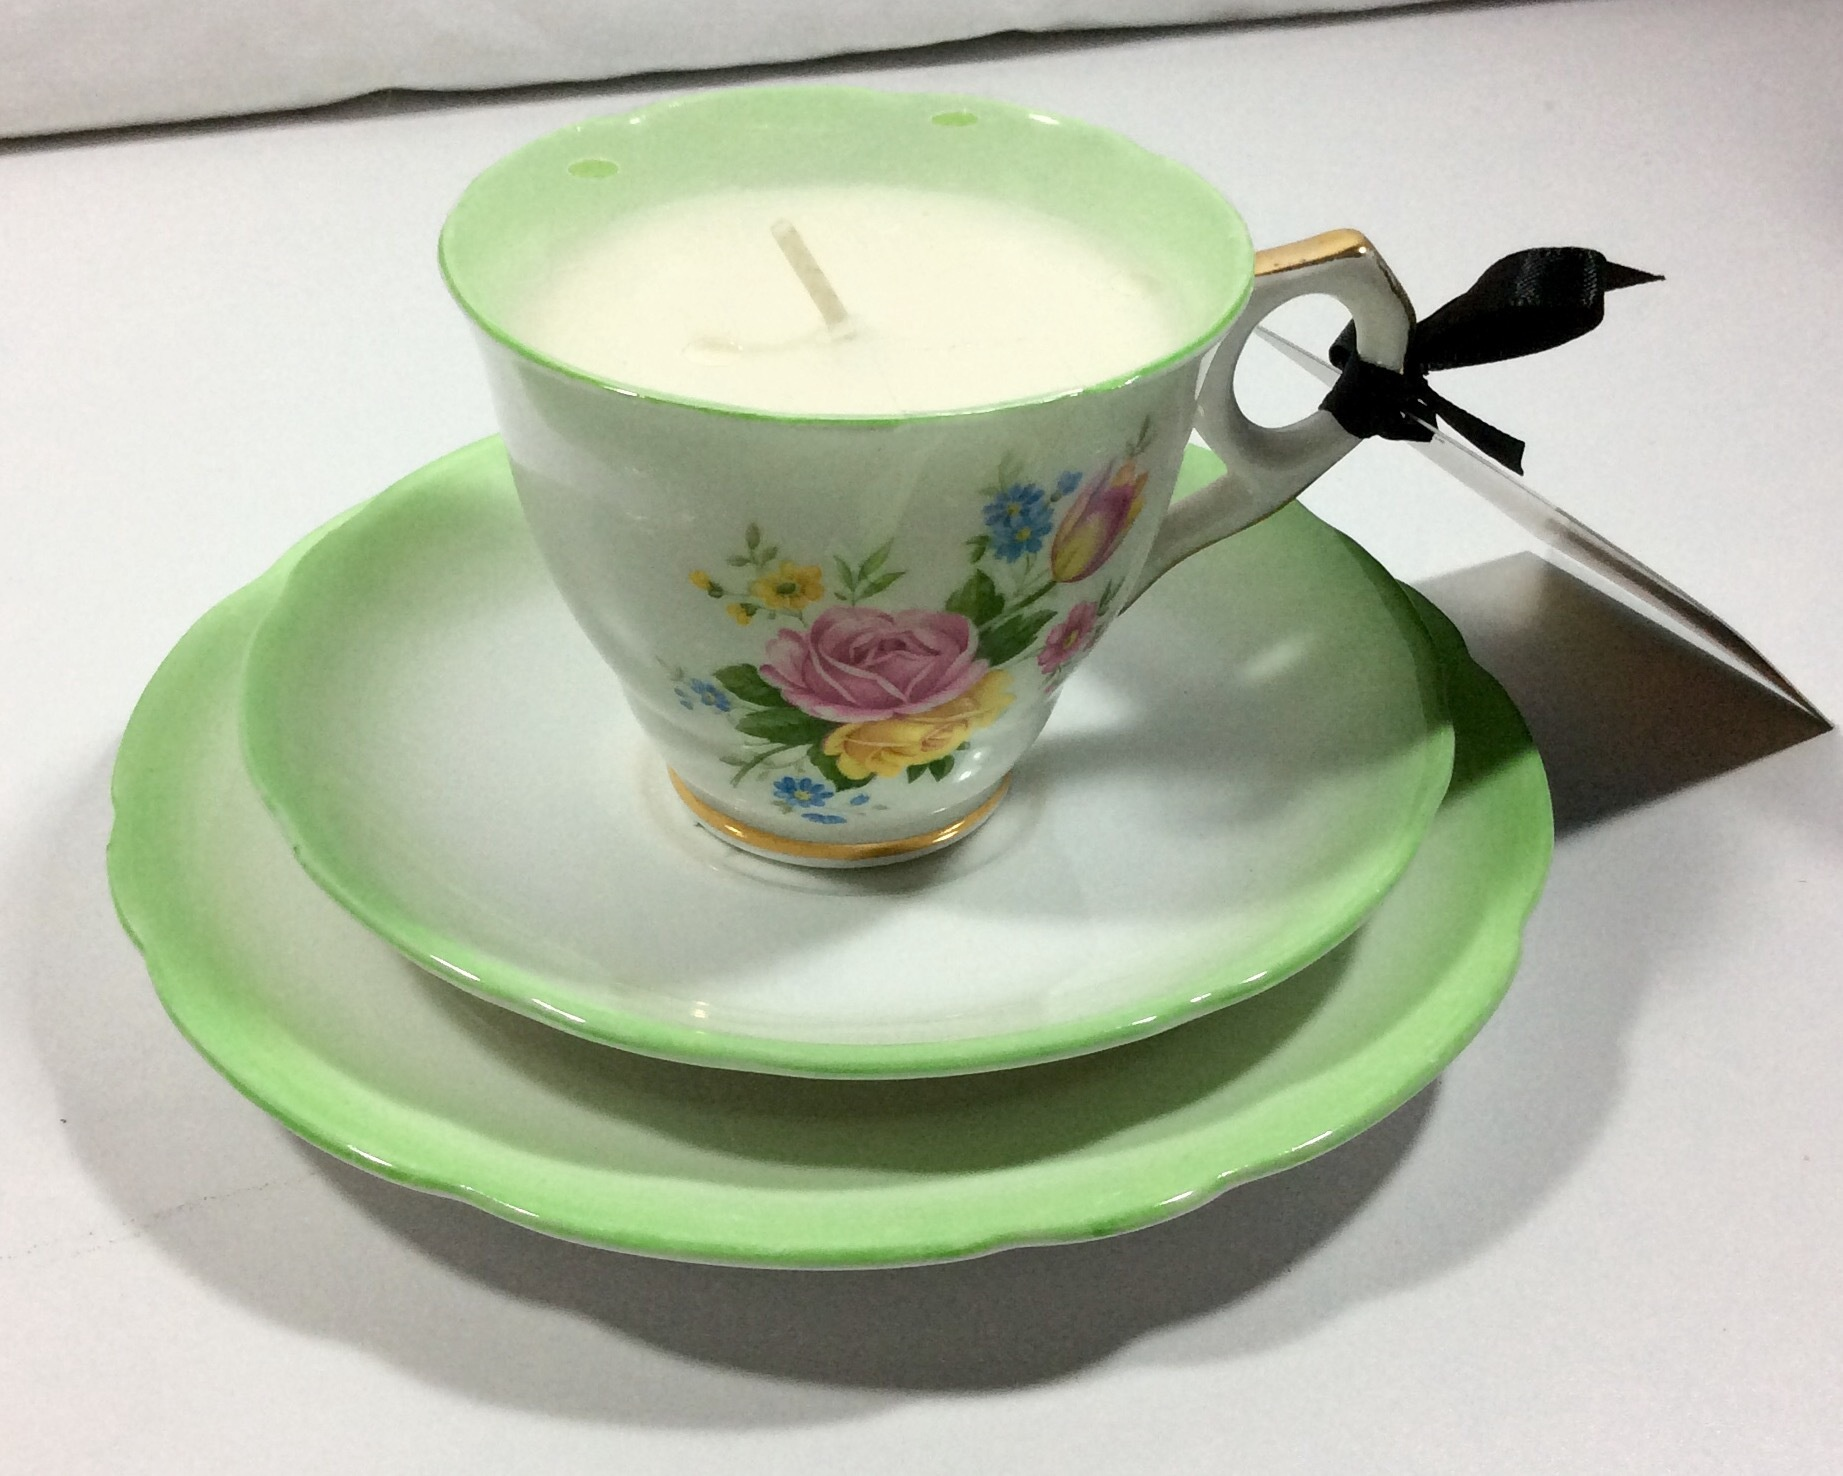 Vintage Tea Cup Candle - Royal Stafford Bone China Trio - Bamboo & Lily